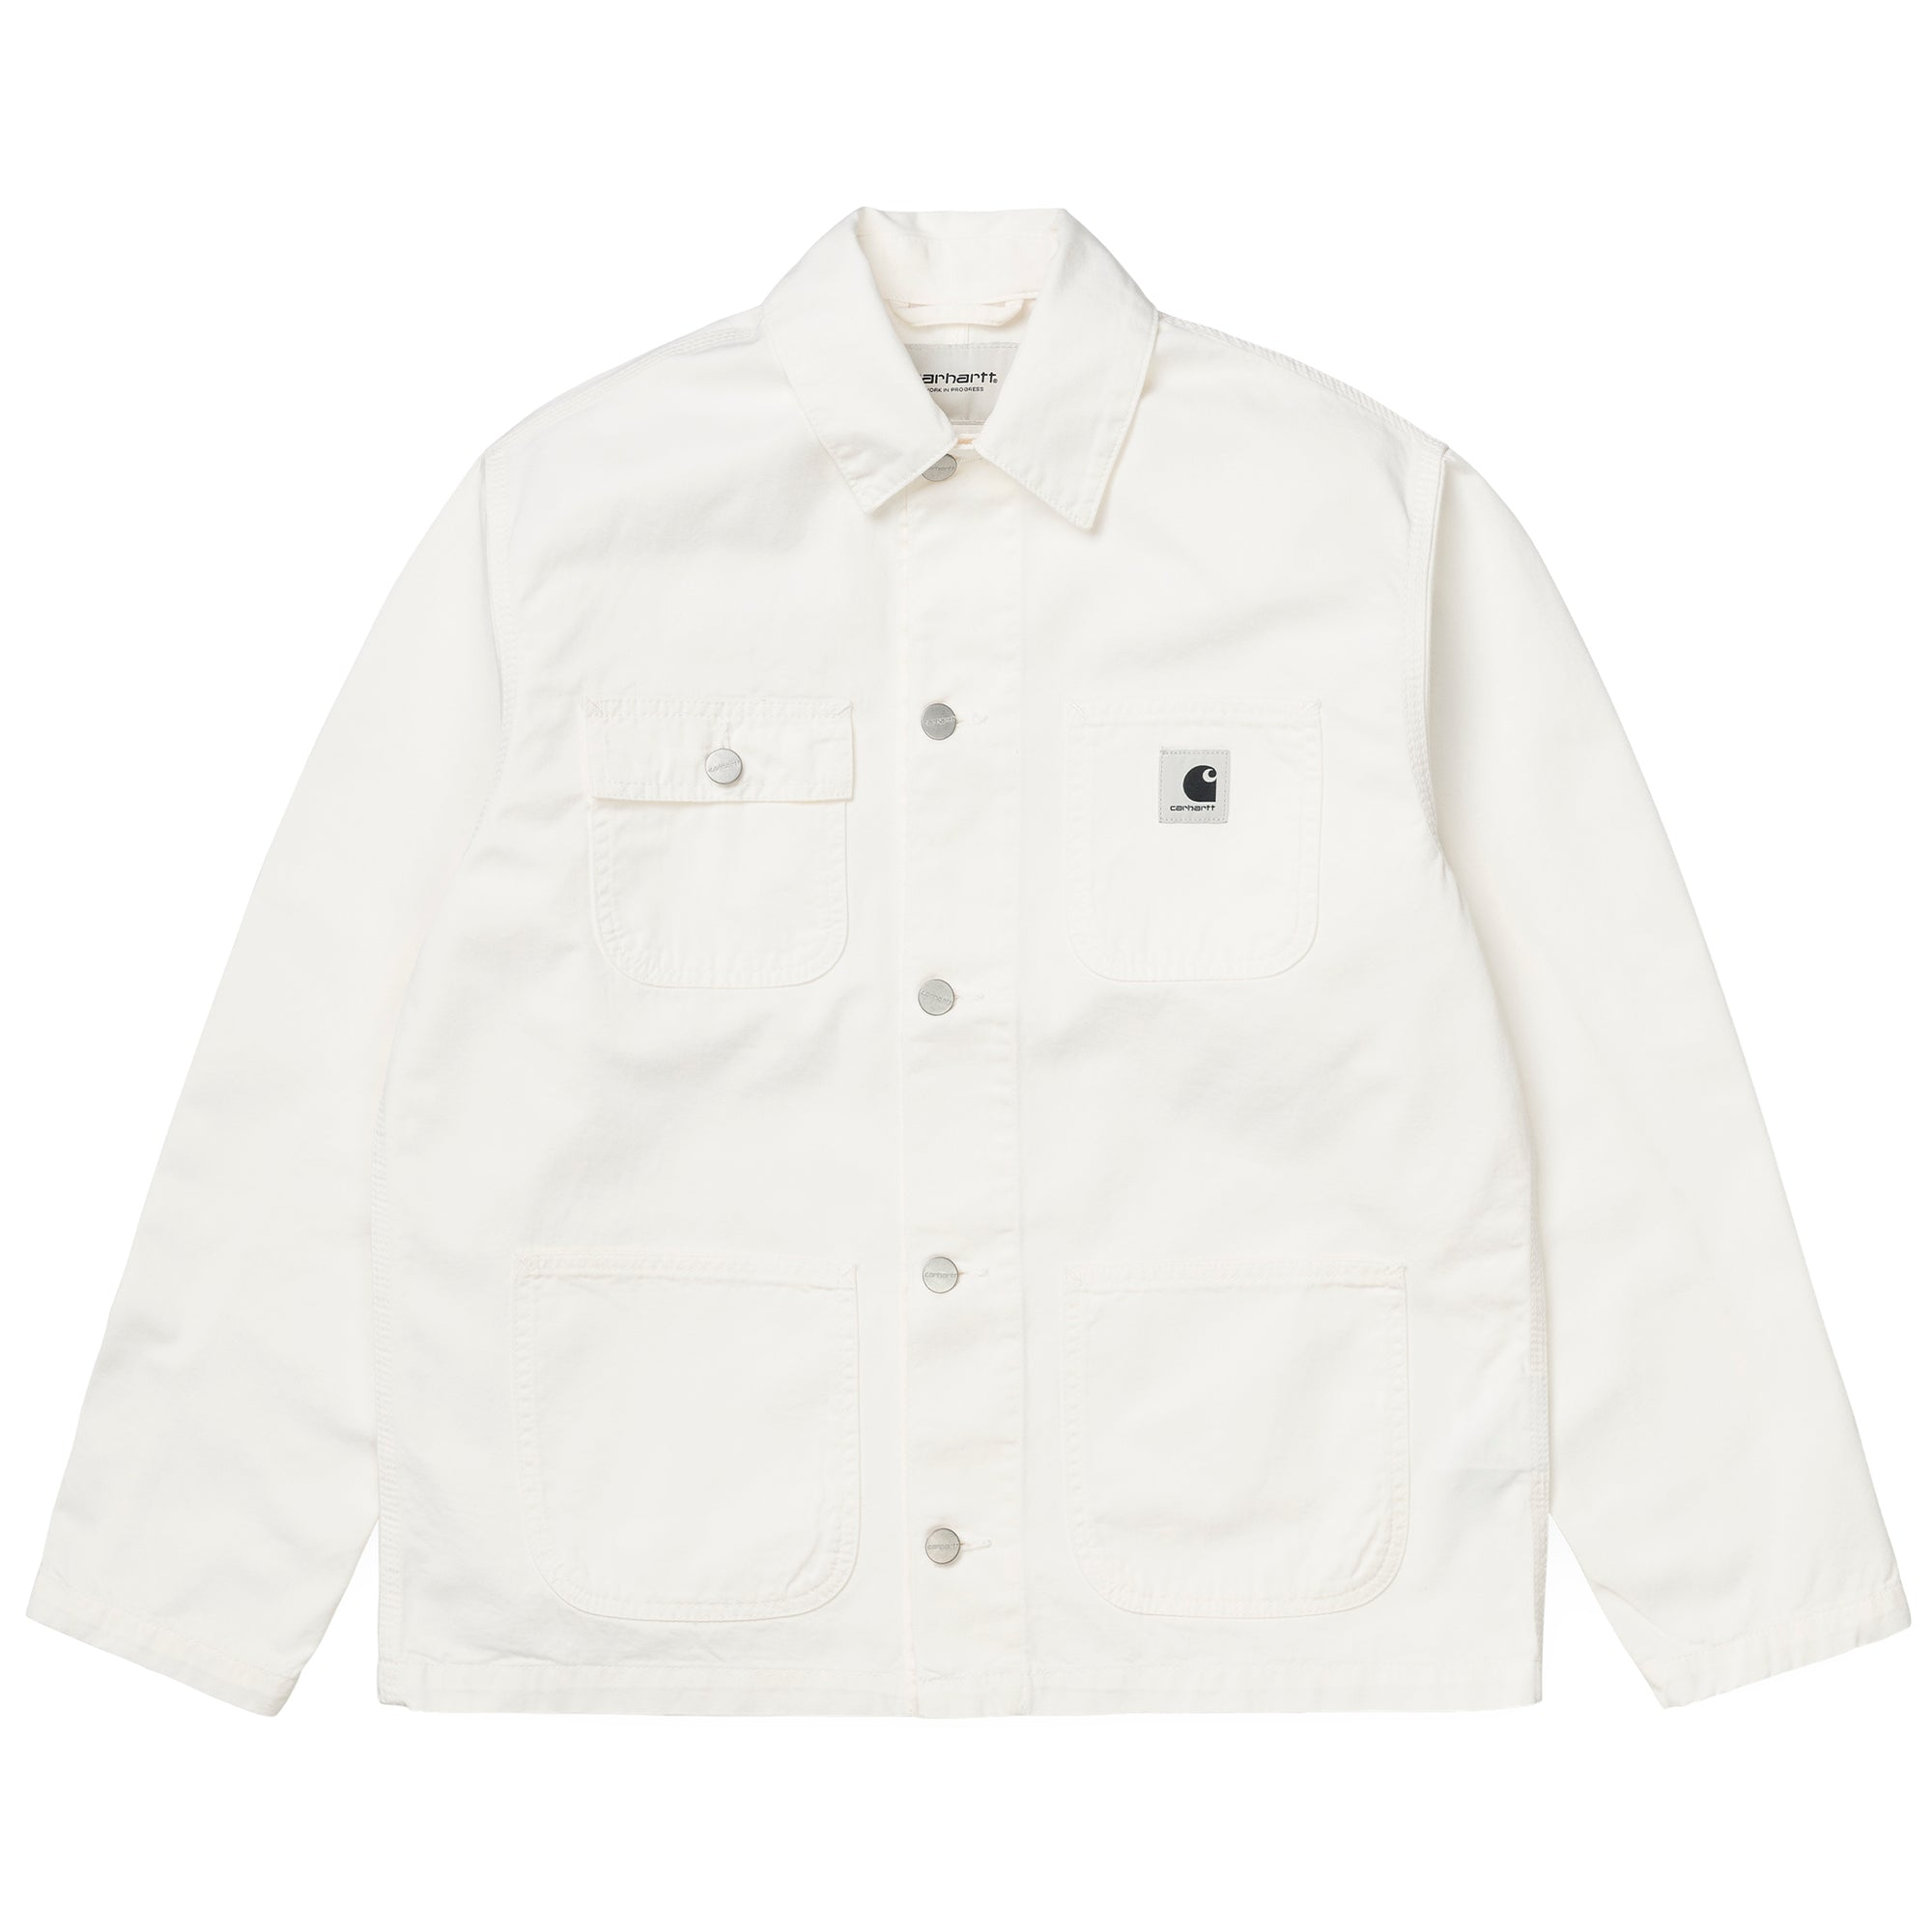 Carhartt WIP Womens Michigan Coat: Off White - The Union Project